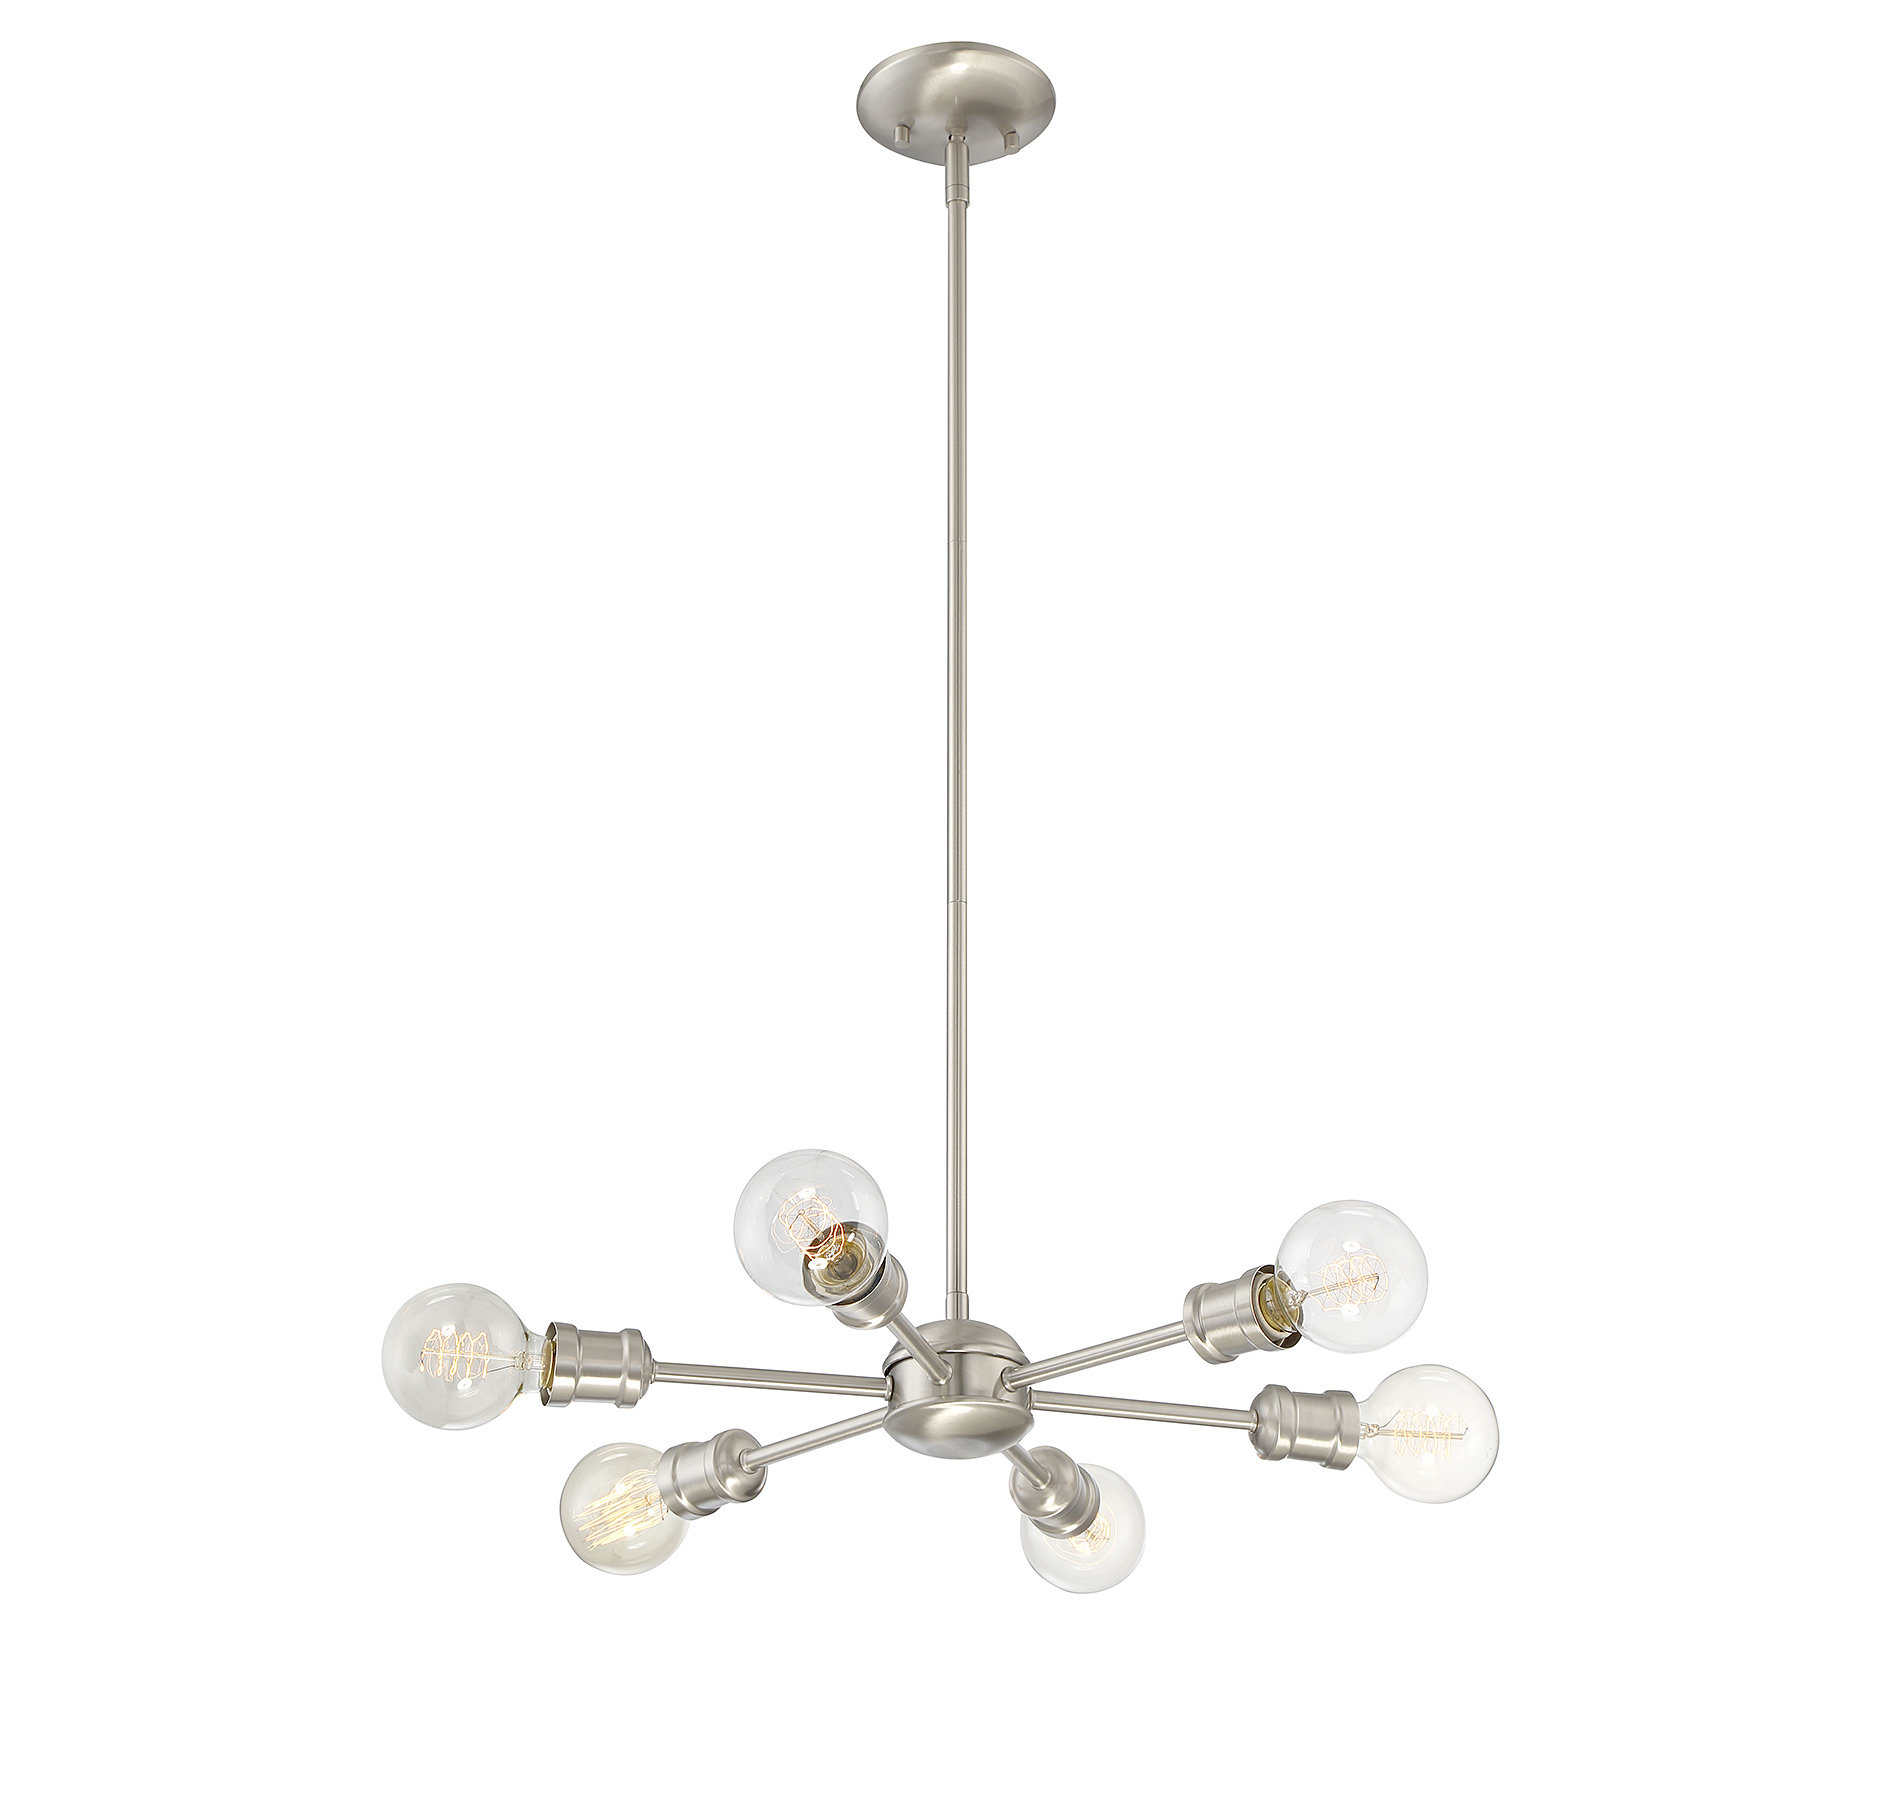 Bautista 6 Light Sputnik Chandelier Pertaining To Bautista 6 Light Kitchen Island Bulb Pendants (View 11 of 30)